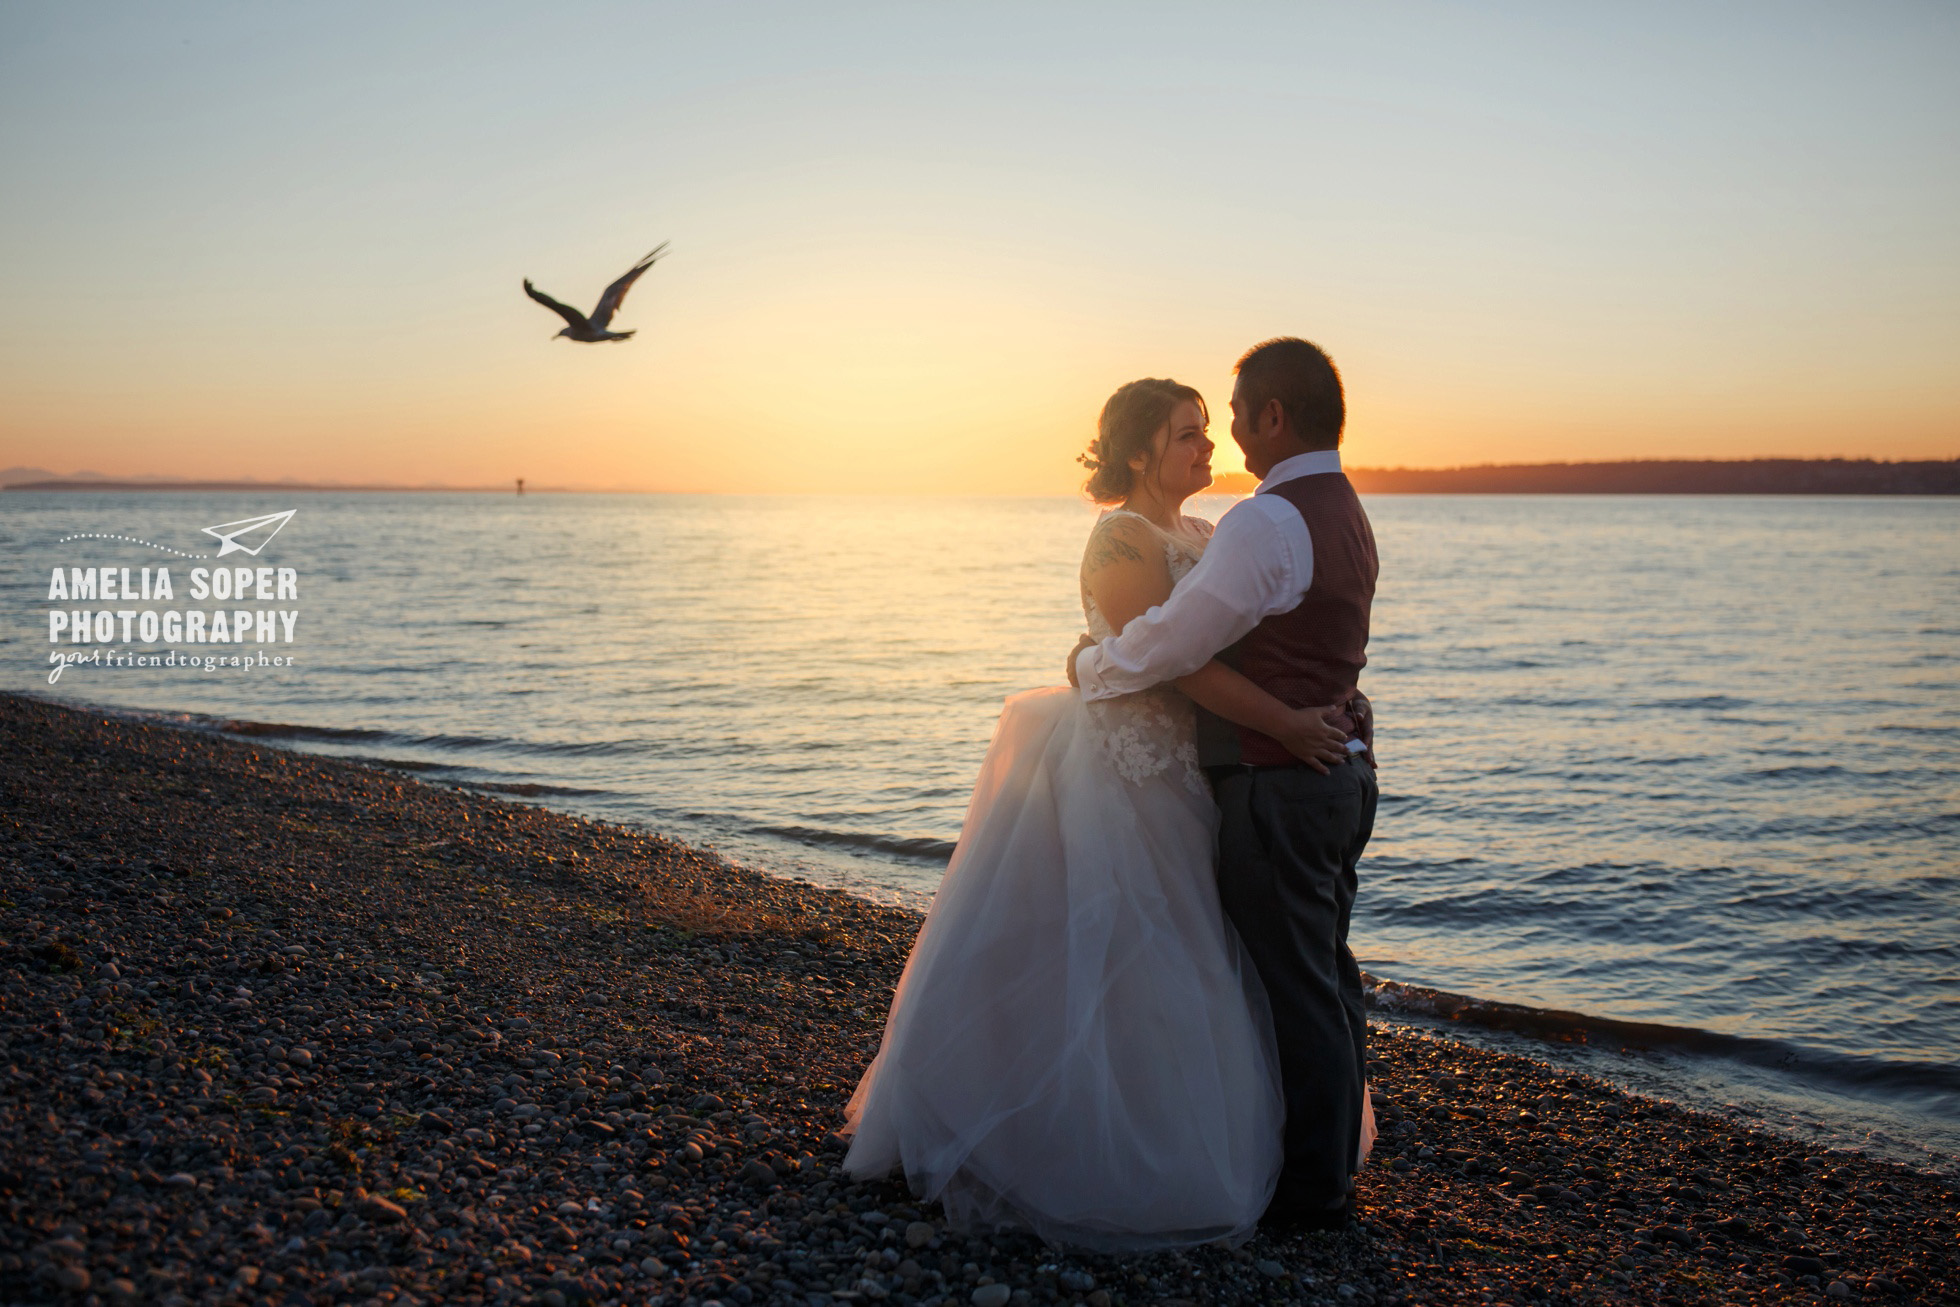 Destination waterfront wedding at Semiahmoo resort in Blaine, Washington PNW